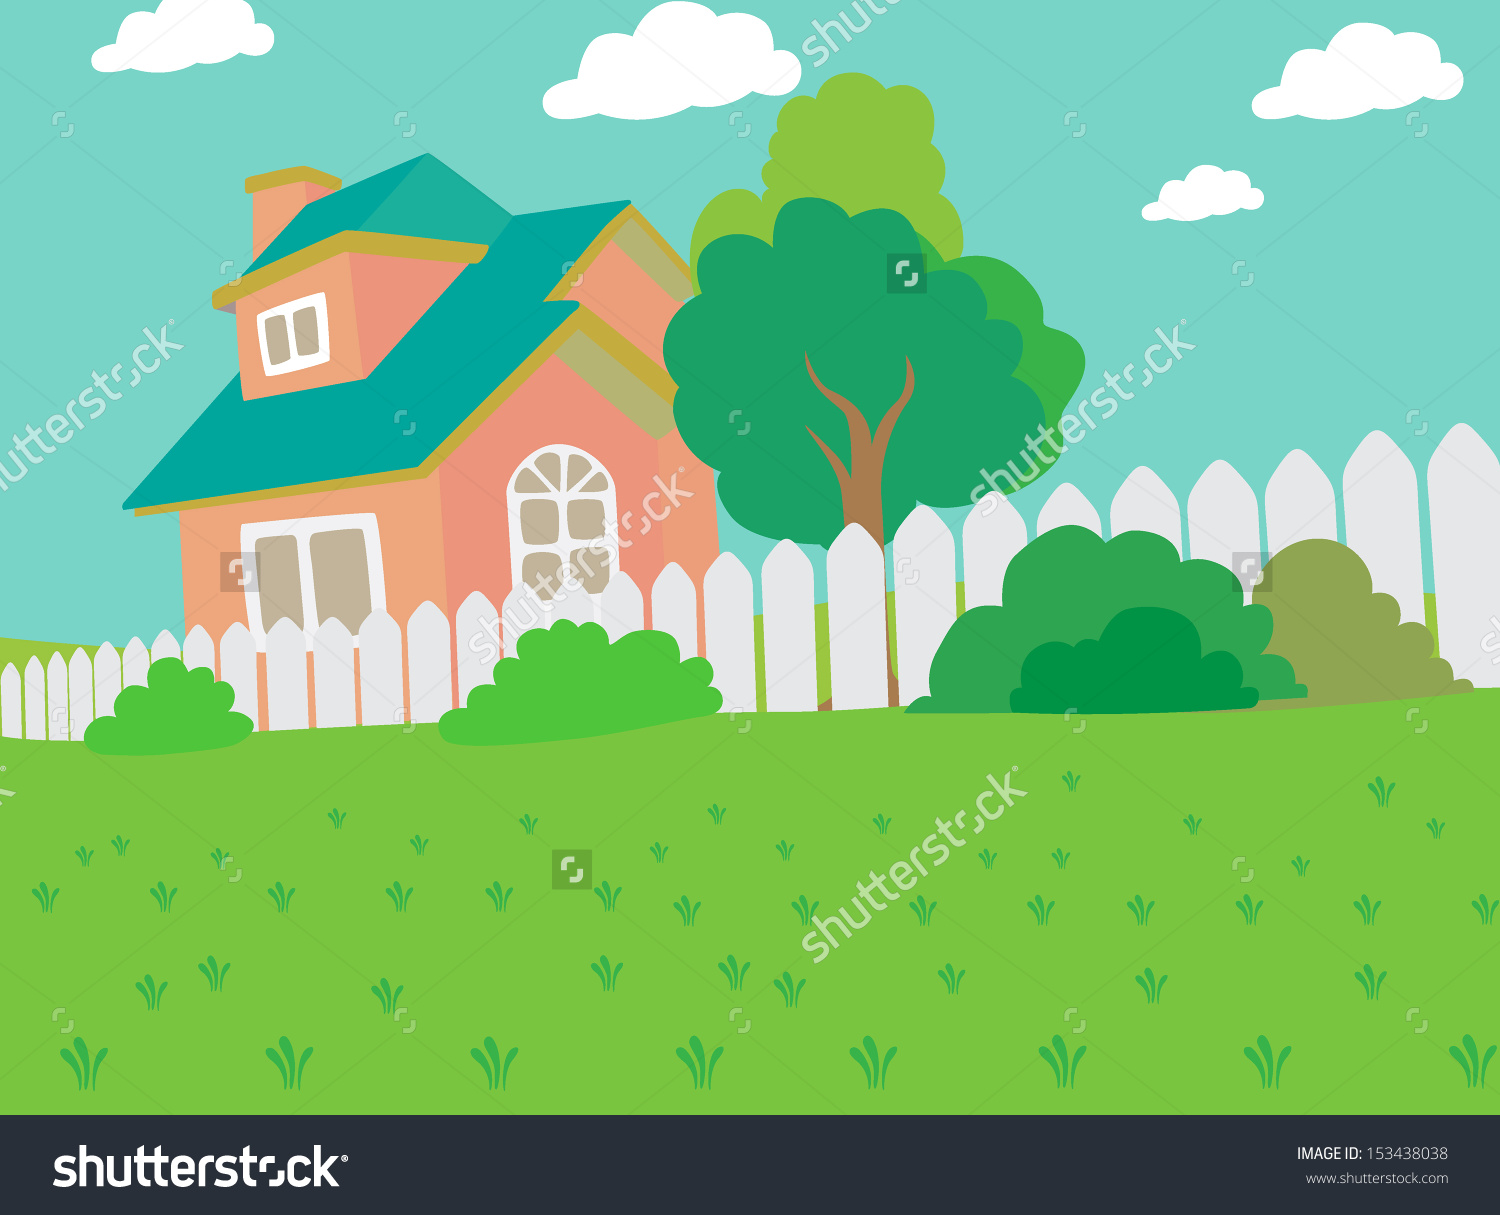 Back yard clipart - Clipground